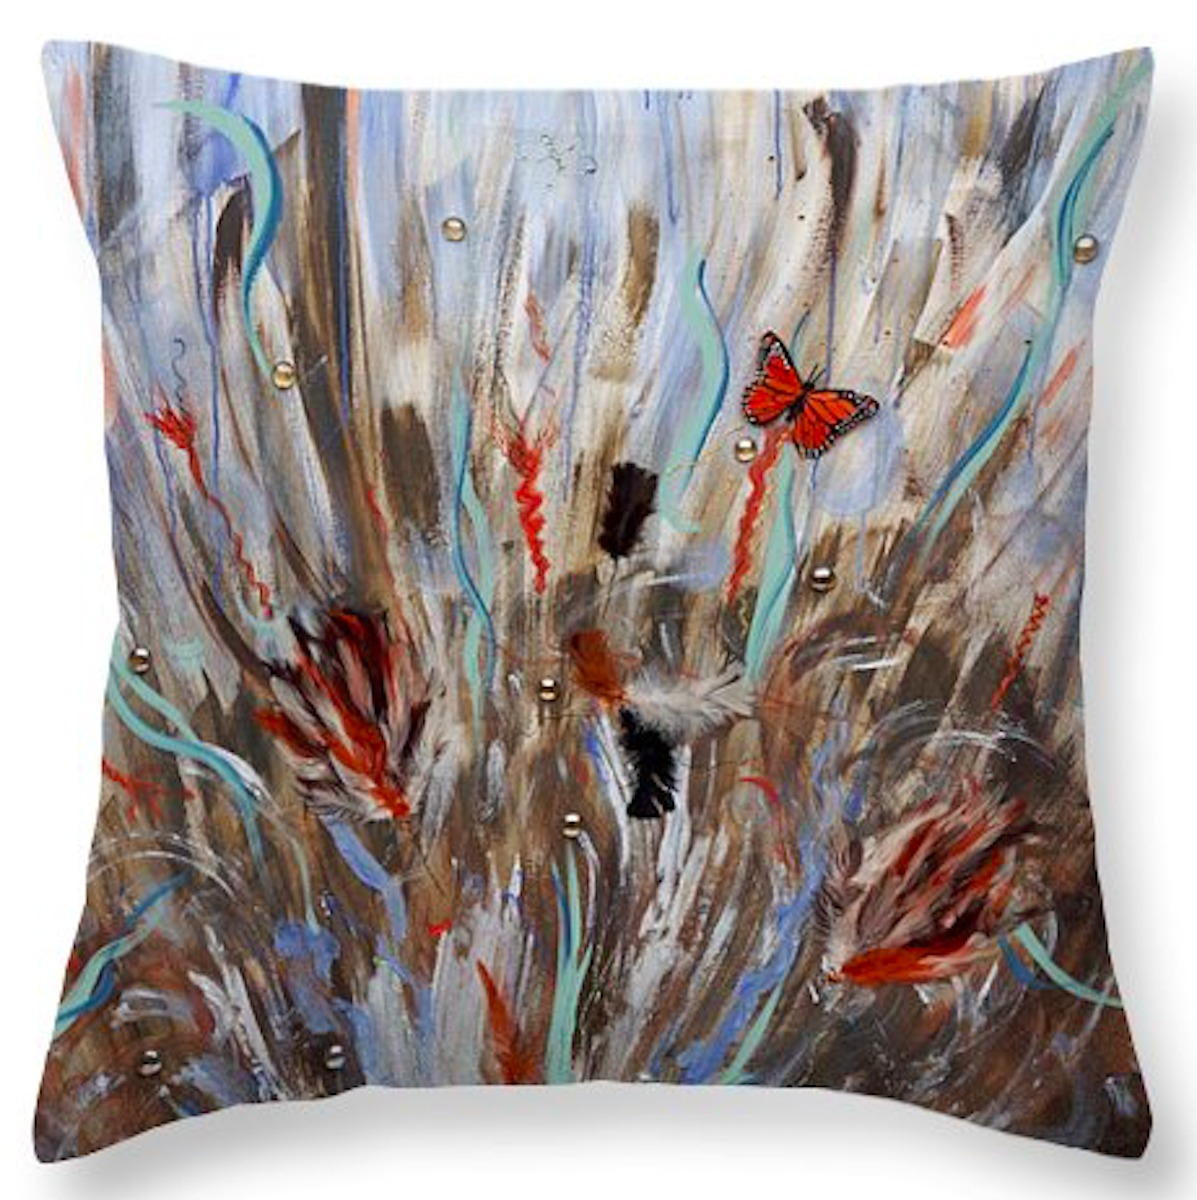 Playing with Fear - Throw Pillow (26x26) (large view)